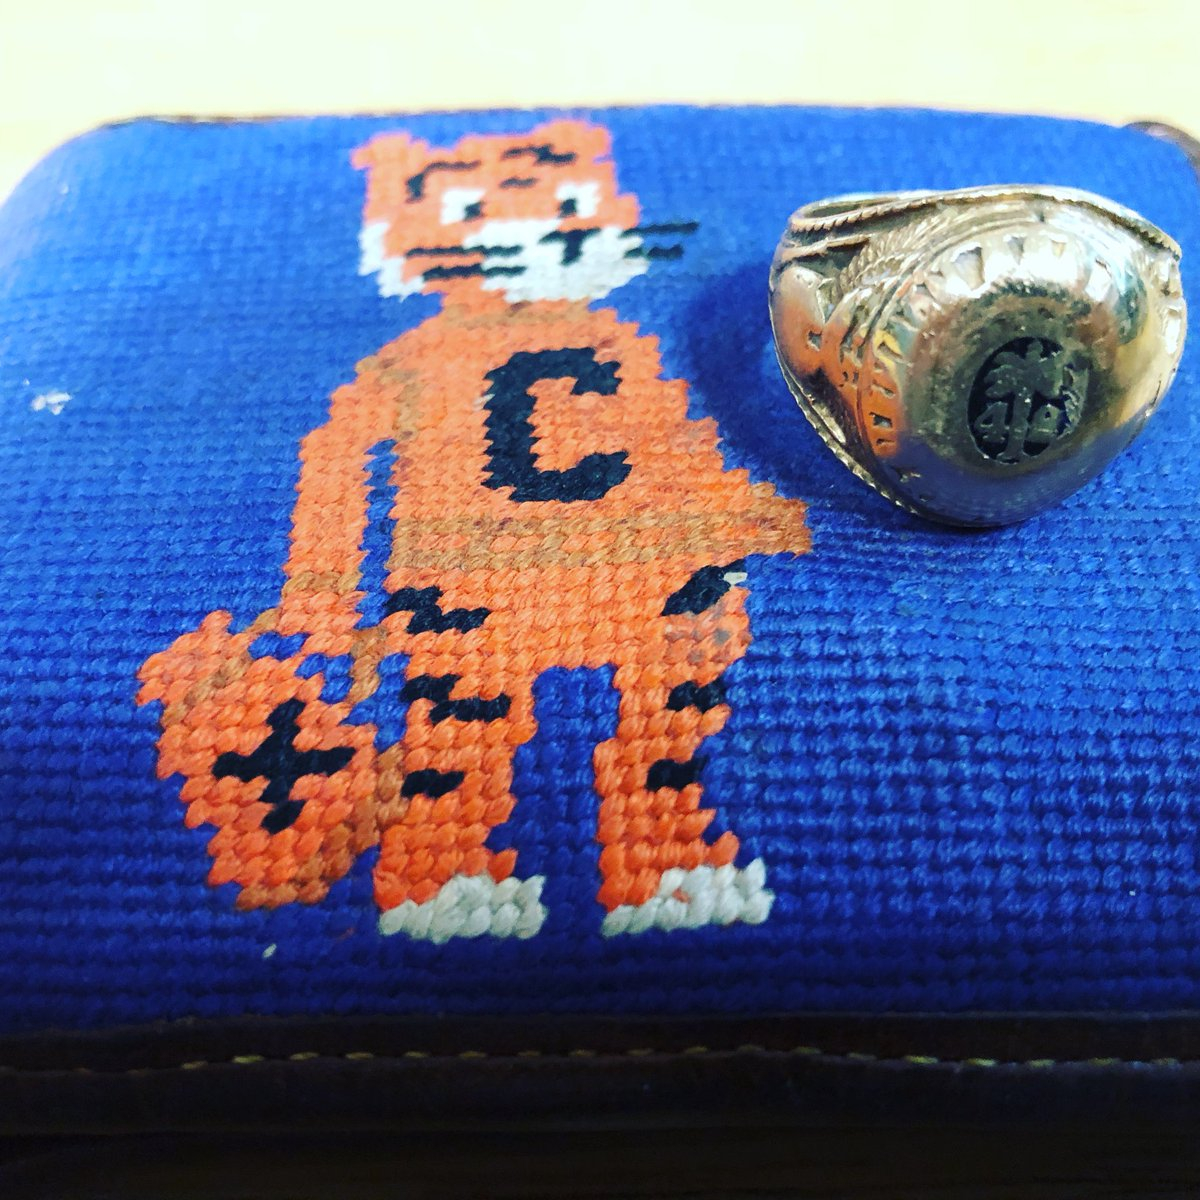 Can't wait to bring out my granddad's 42 class ring again this year. Wear it to every single home game to have him with me in the Valley. #ClemsonFamily <br>http://pic.twitter.com/LOGeCjCaY1